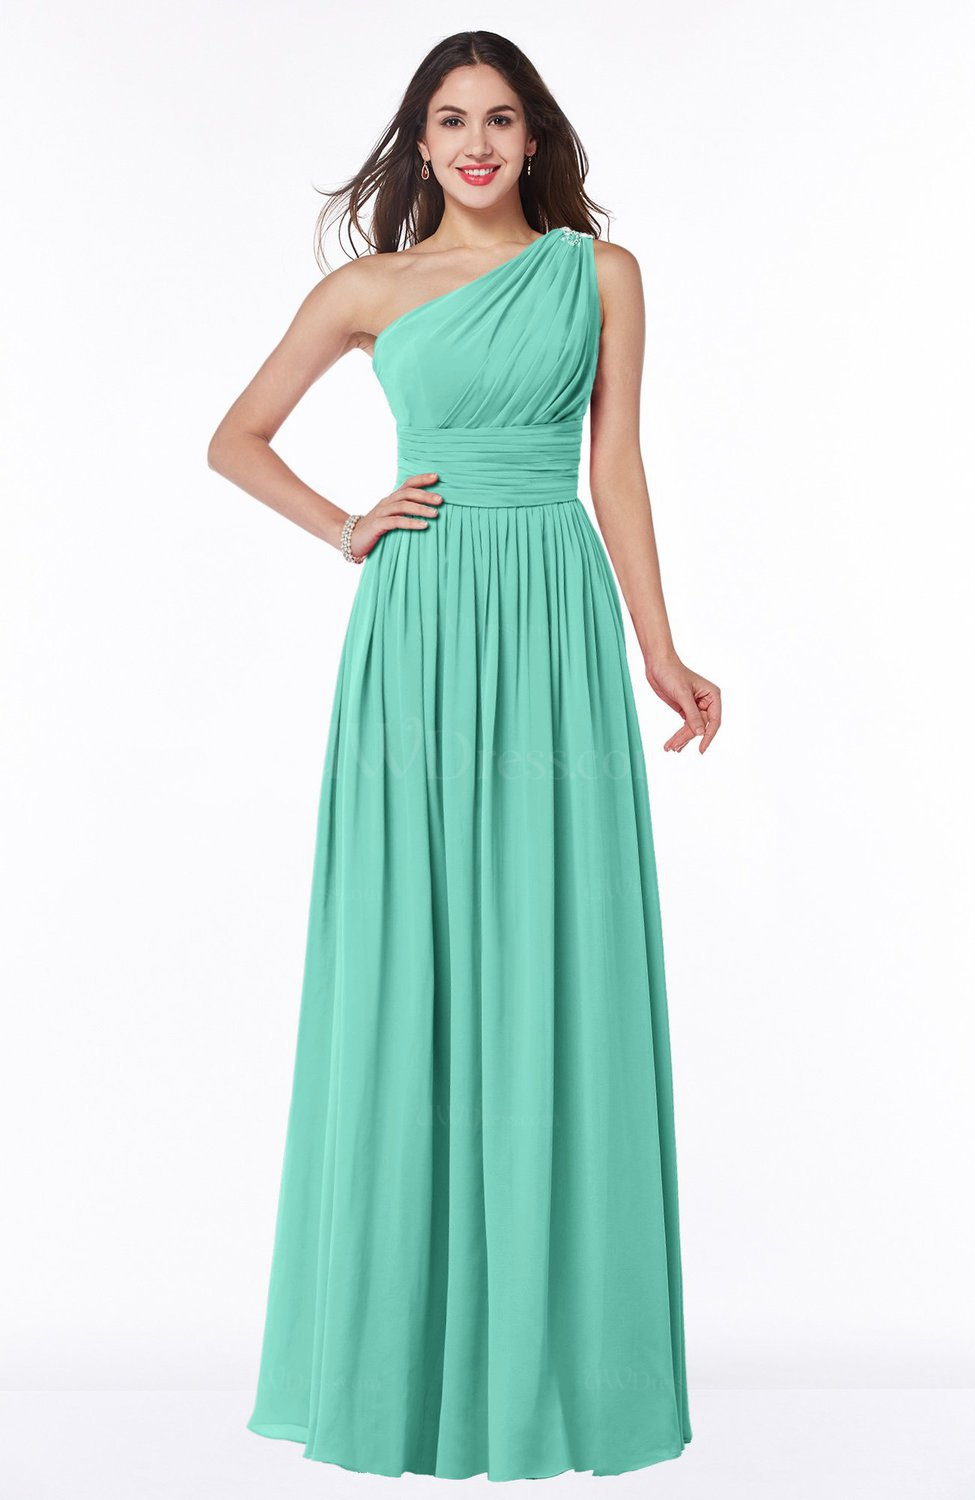 83559fc0ccac5 Mint Green Traditional A-line One Shoulder Sleeveless Chiffon Floor Length  Plus Size Bridesmaid Dresses (Style D21761)